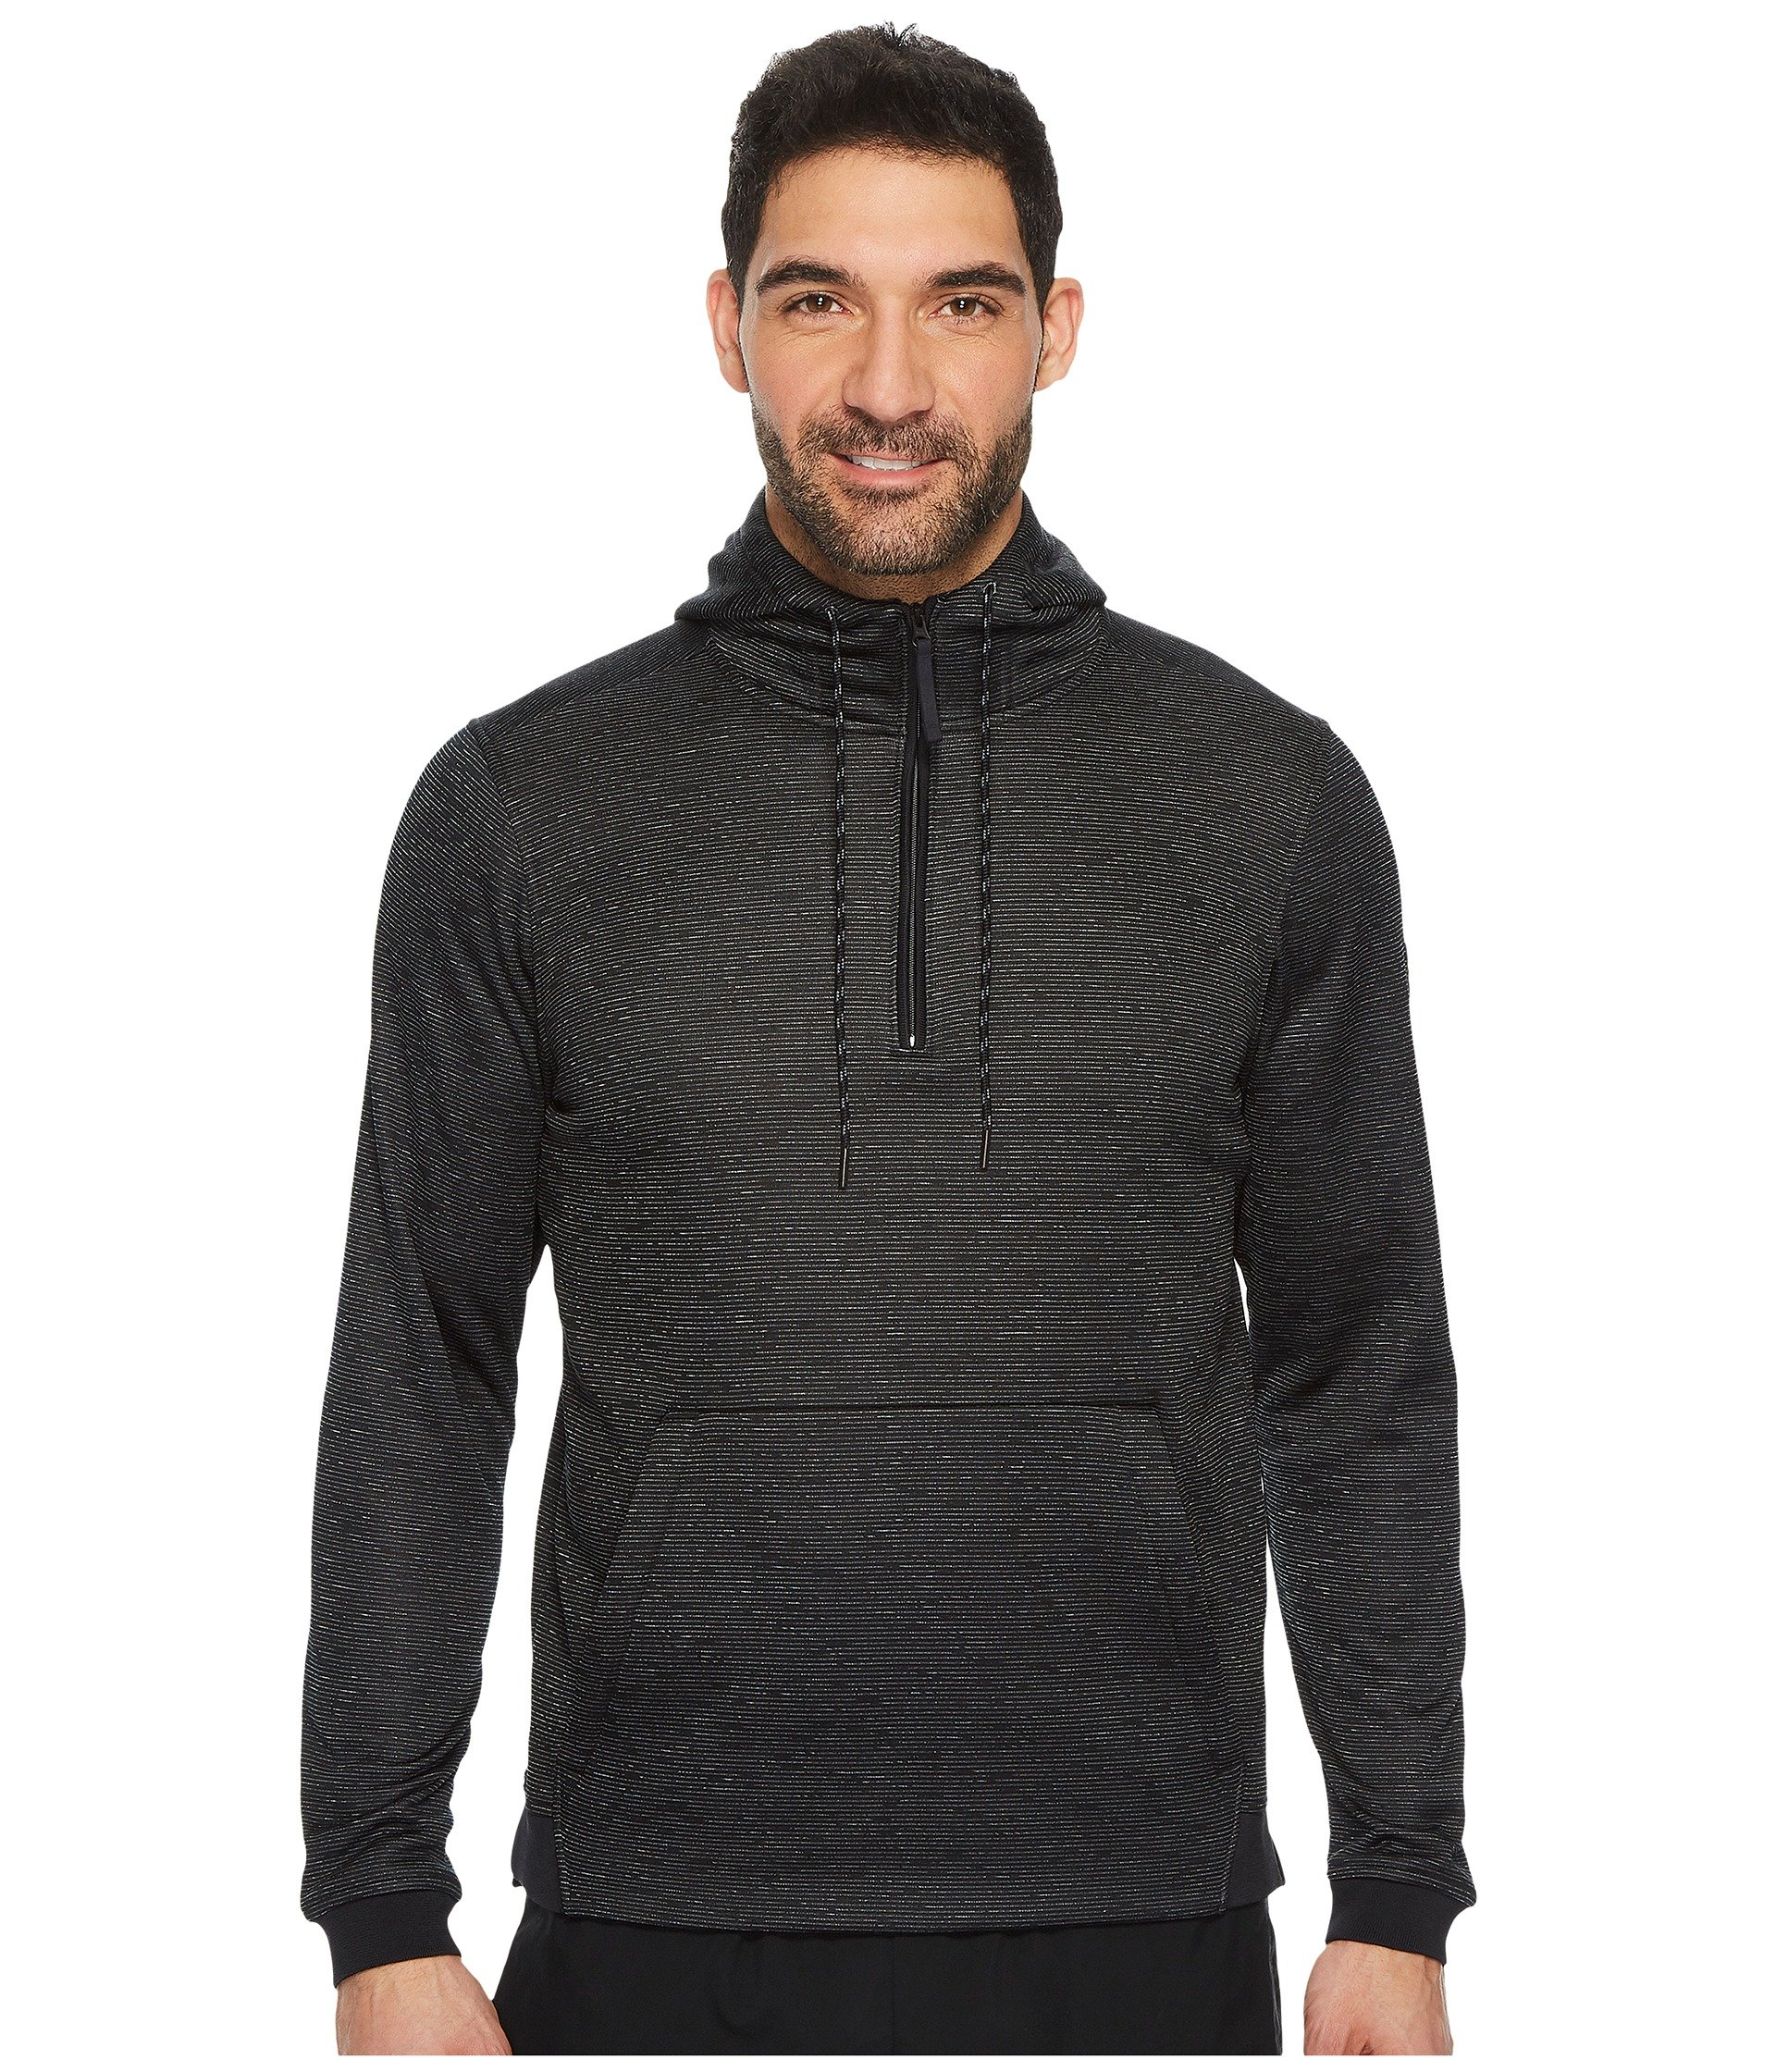 Men's Under Armour Armour Fleece Icon 1/4 Zip PO Hoodie, Black, X-Small